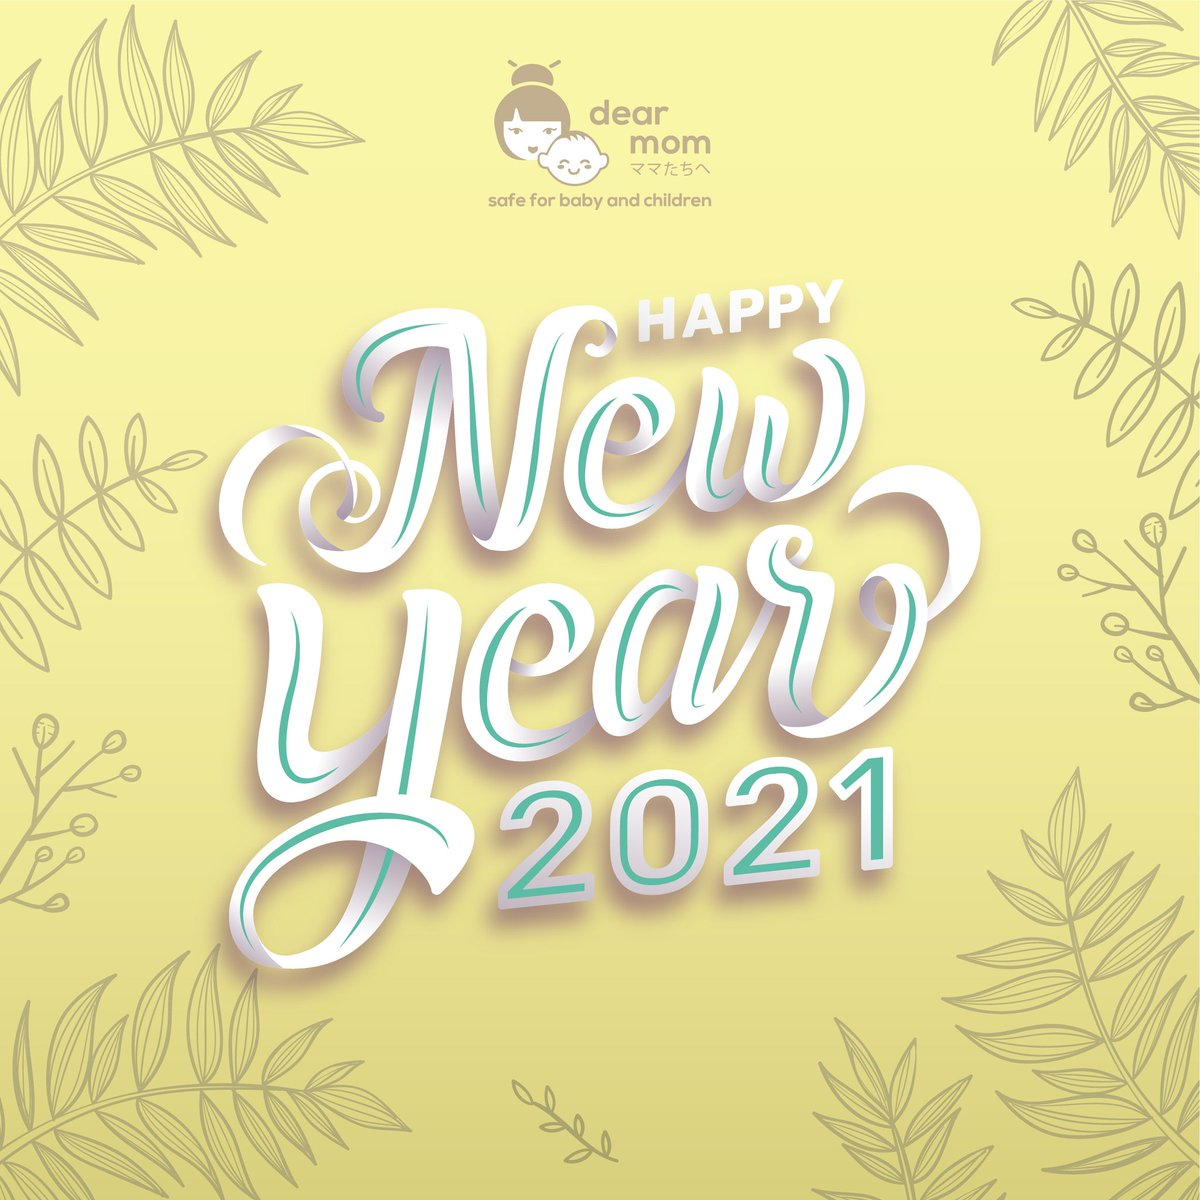 Happy New Year 2021🎉🎉  Semoga tahun baru ini akan penuh dengan hal-hal positif untuk kita semua. Stay positive and stay healthy😊😊  Hari Kerja Dear mom Senin - Jumat : Open Sabtu- Minggu : Closed  #testimonisupermom #karbolserehjakarta #sanitizeruntuktangan #dearmom